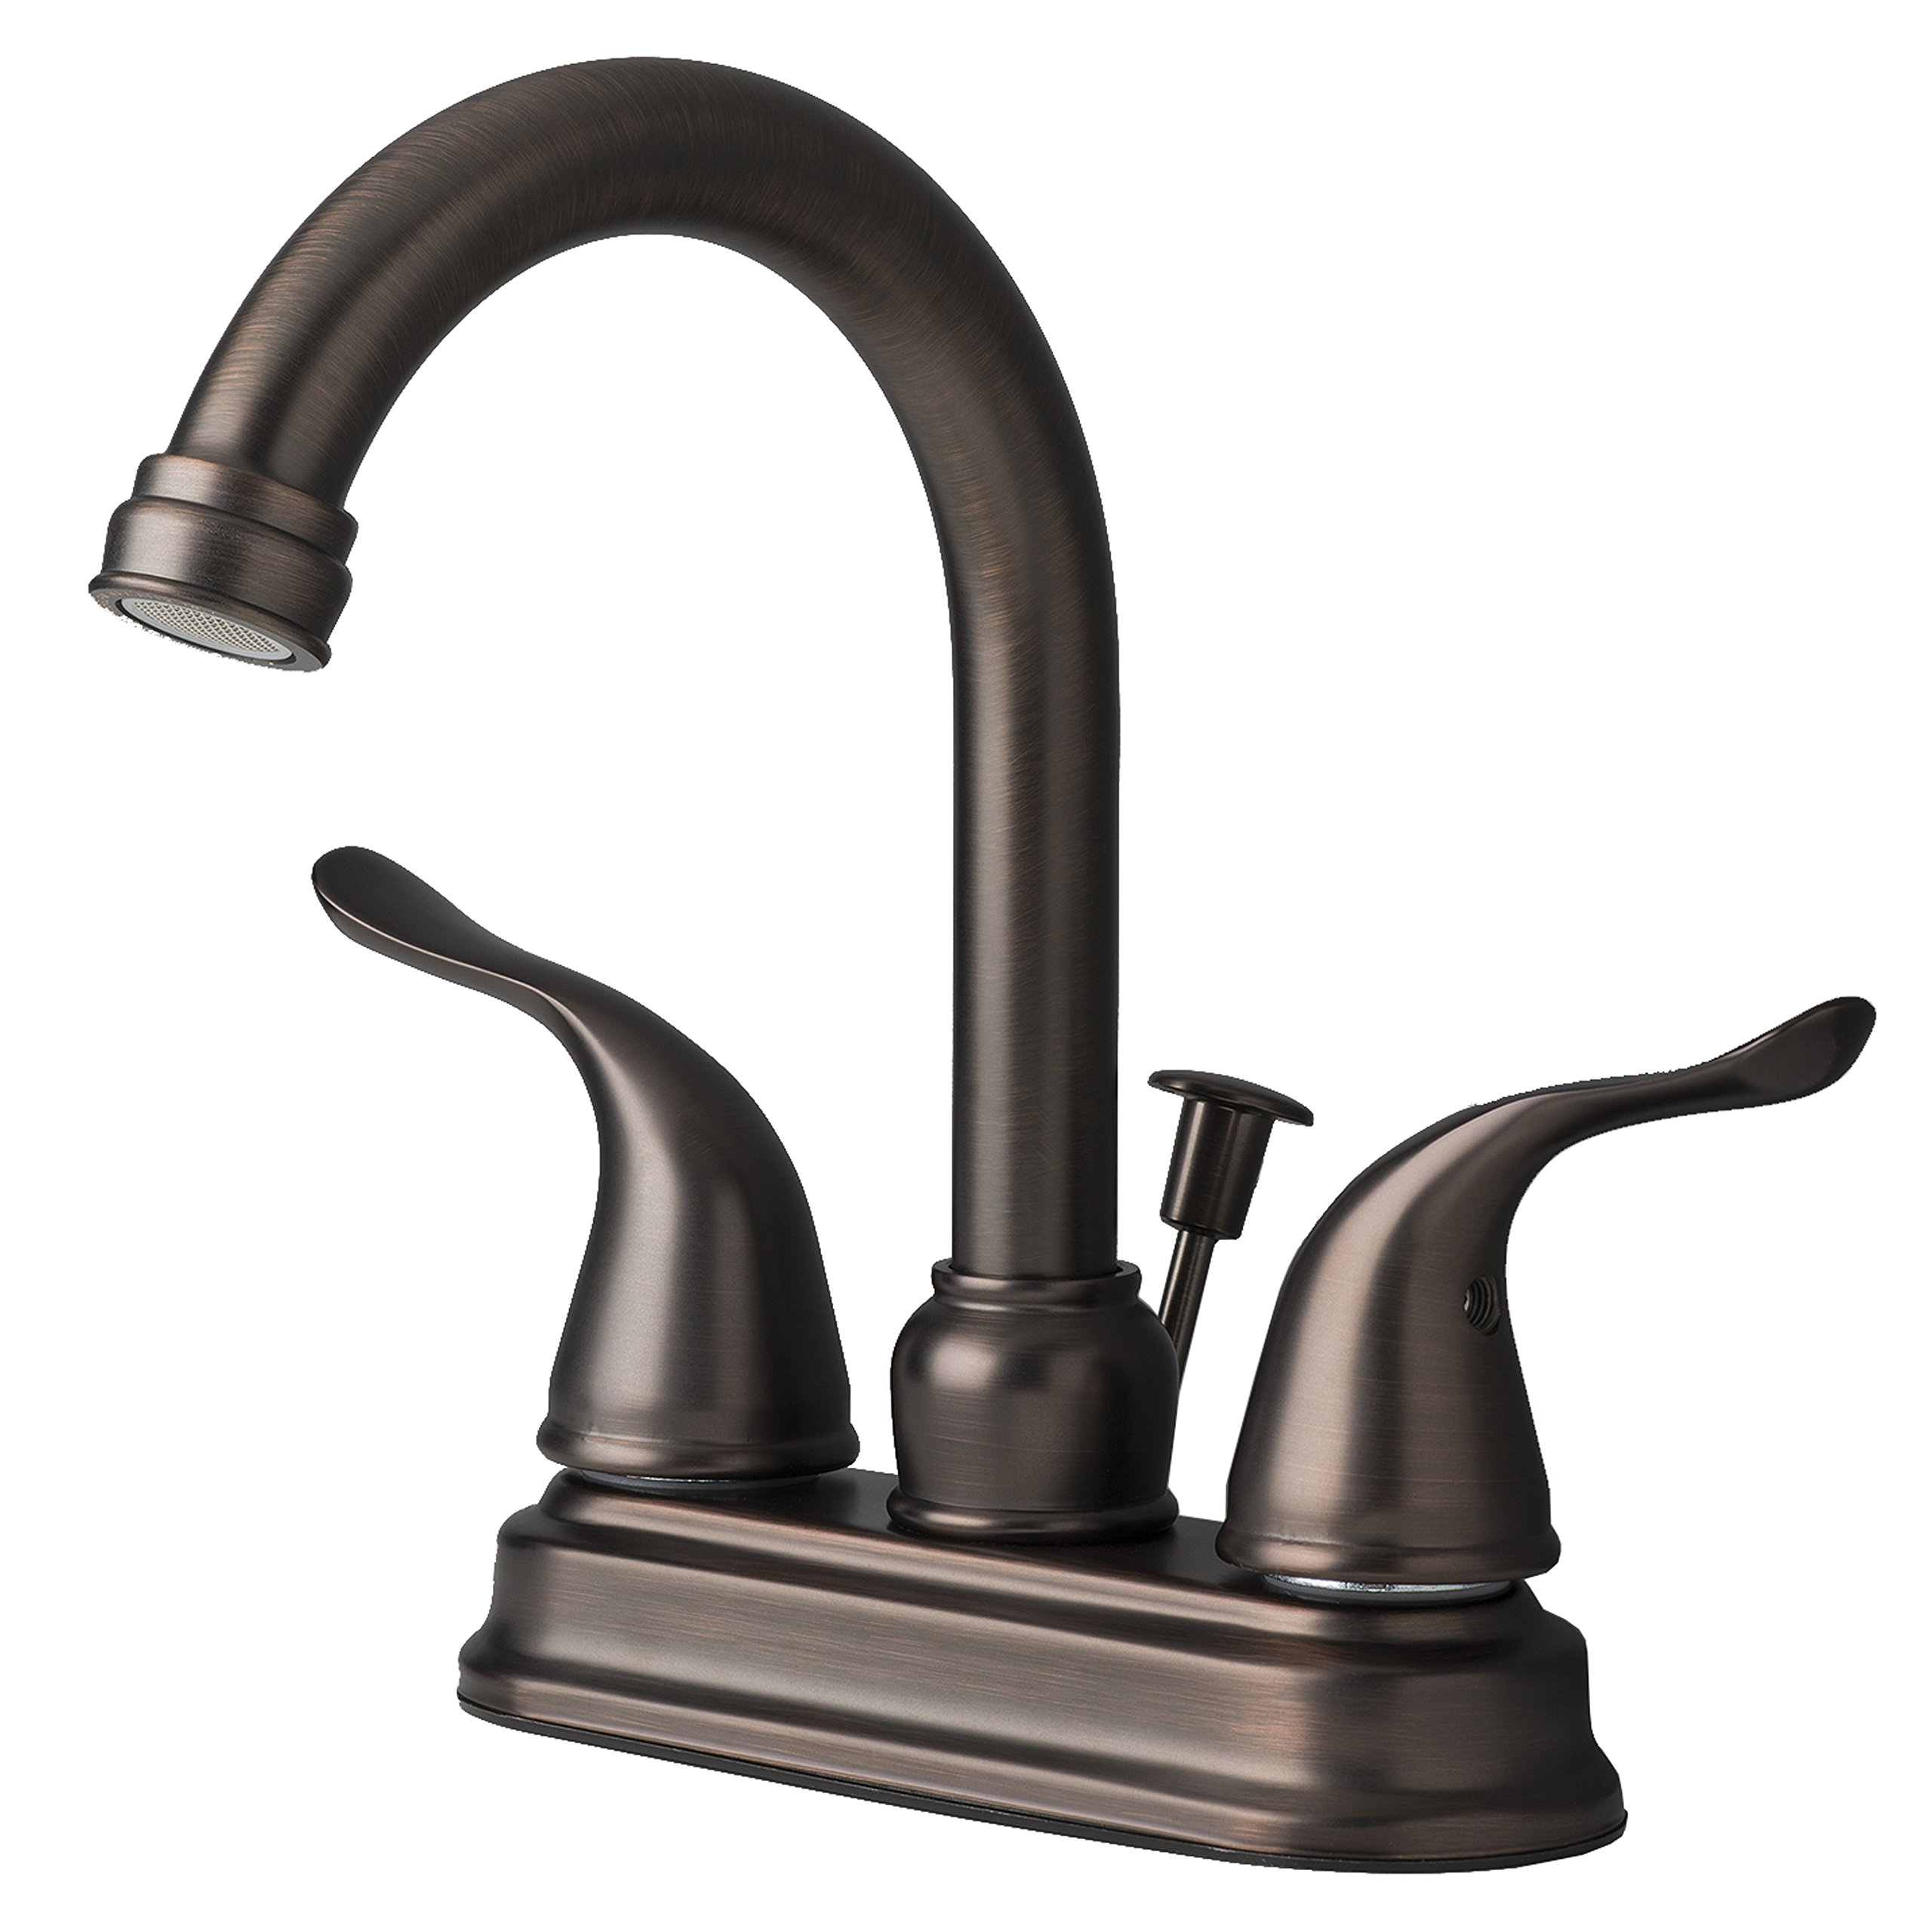 Builders Shoppe 2020BZ Two Handle Centerset Lavatory Faucet with Pop-Up Drain Brushed Bronze Finish by Builders Shoppe